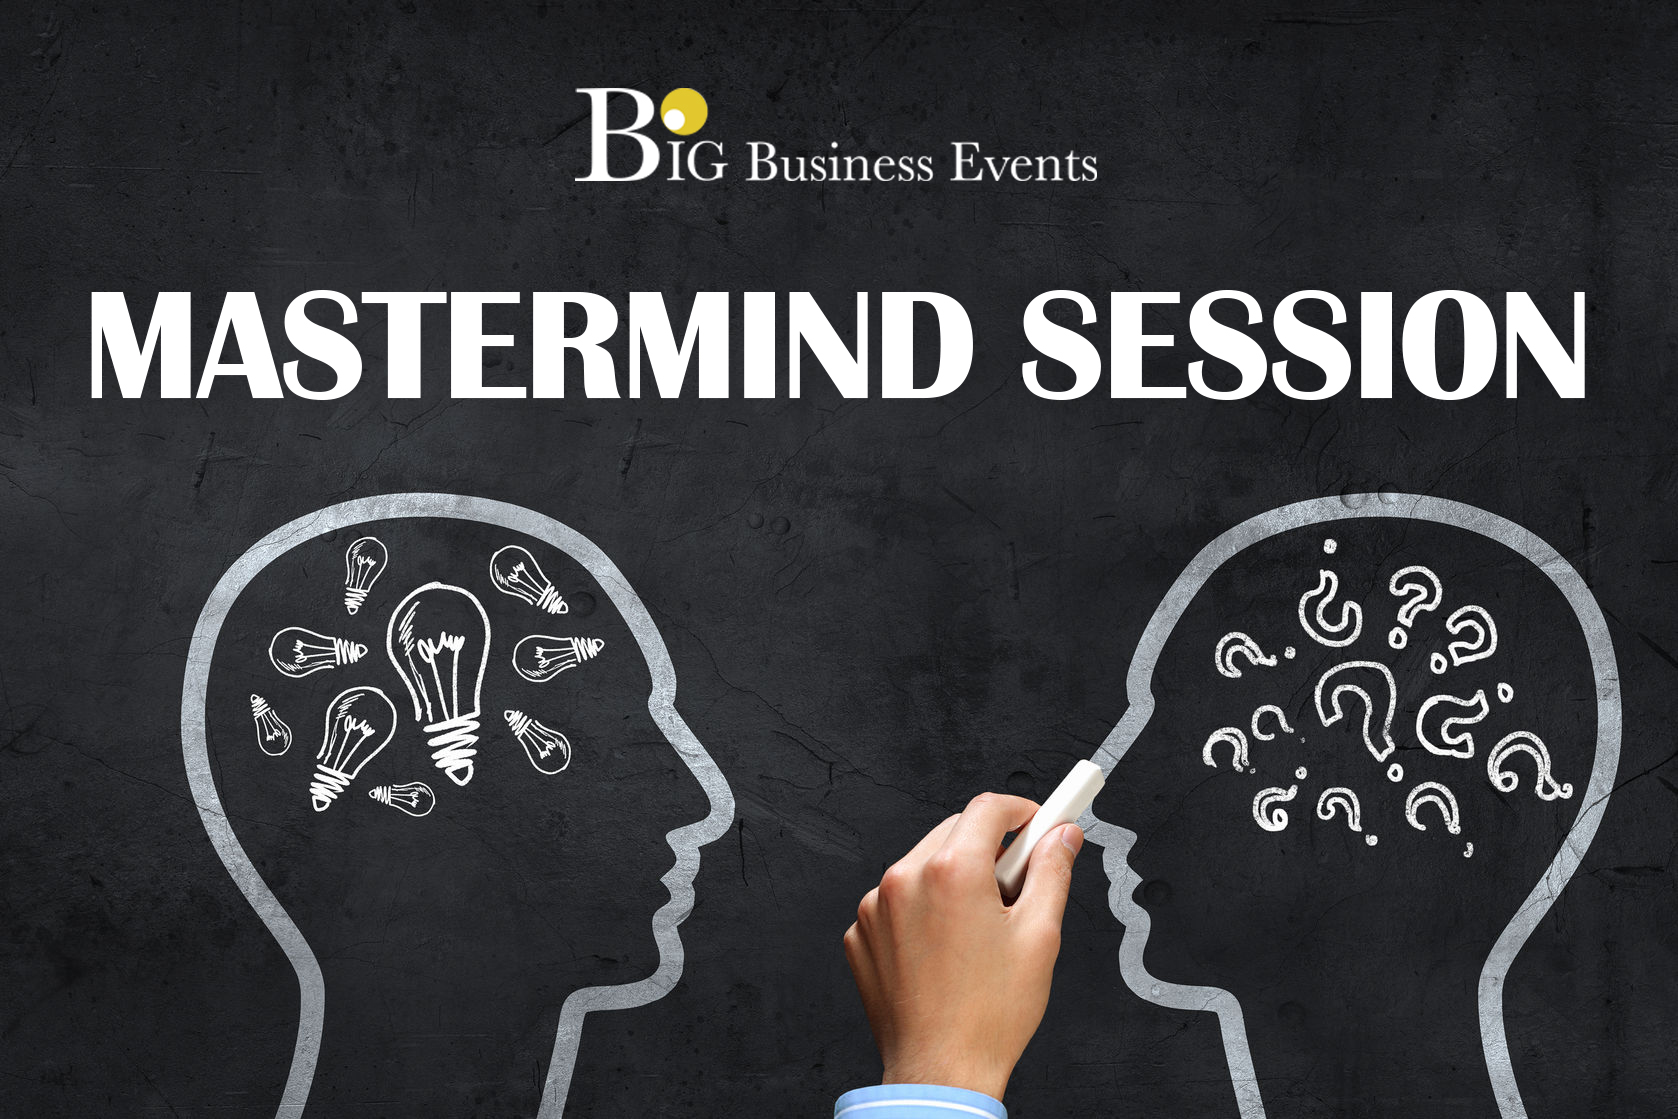 Big Business Events Mastermind  Mastermind Session 26 07 17